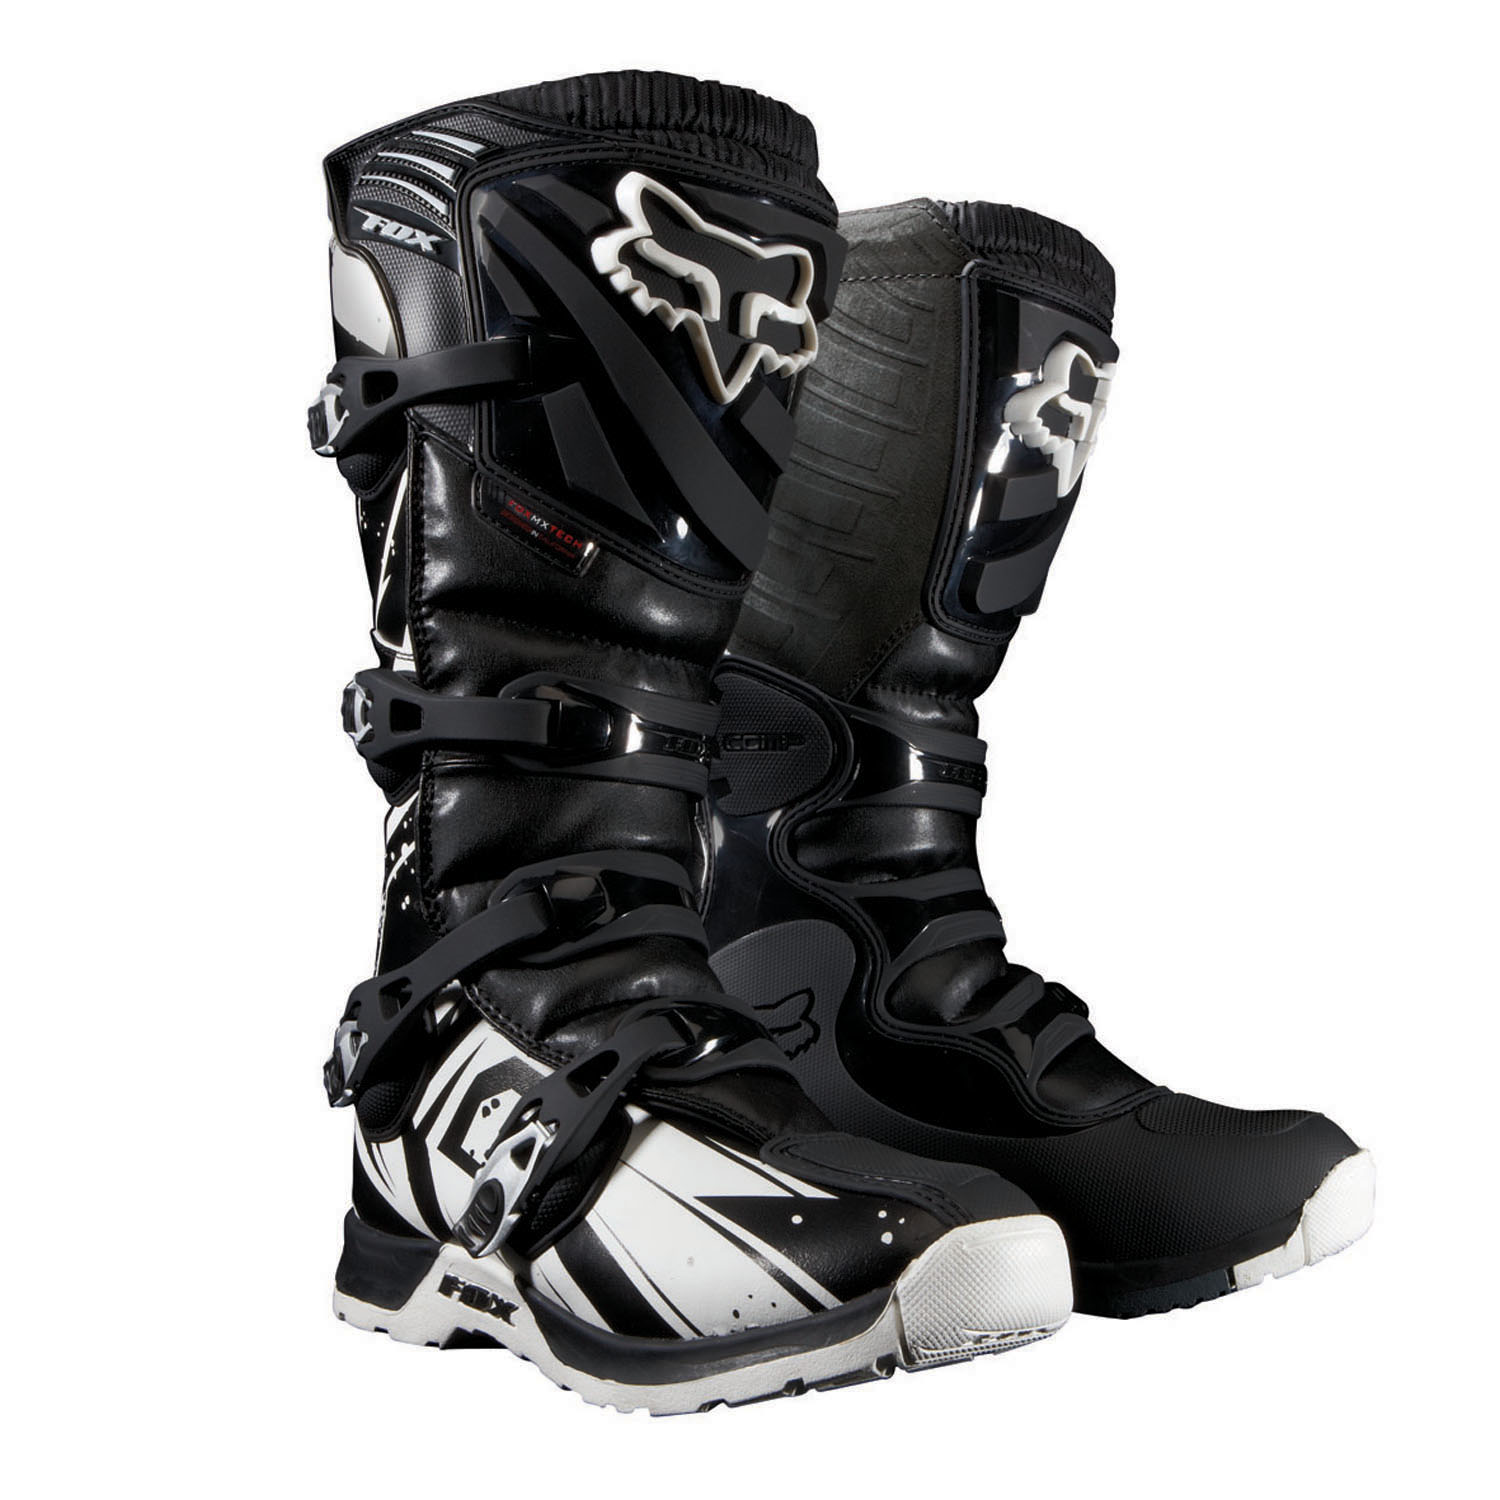 fox kids motocross stiefel comp 5 undertow black 2015 maciag offroad. Black Bedroom Furniture Sets. Home Design Ideas